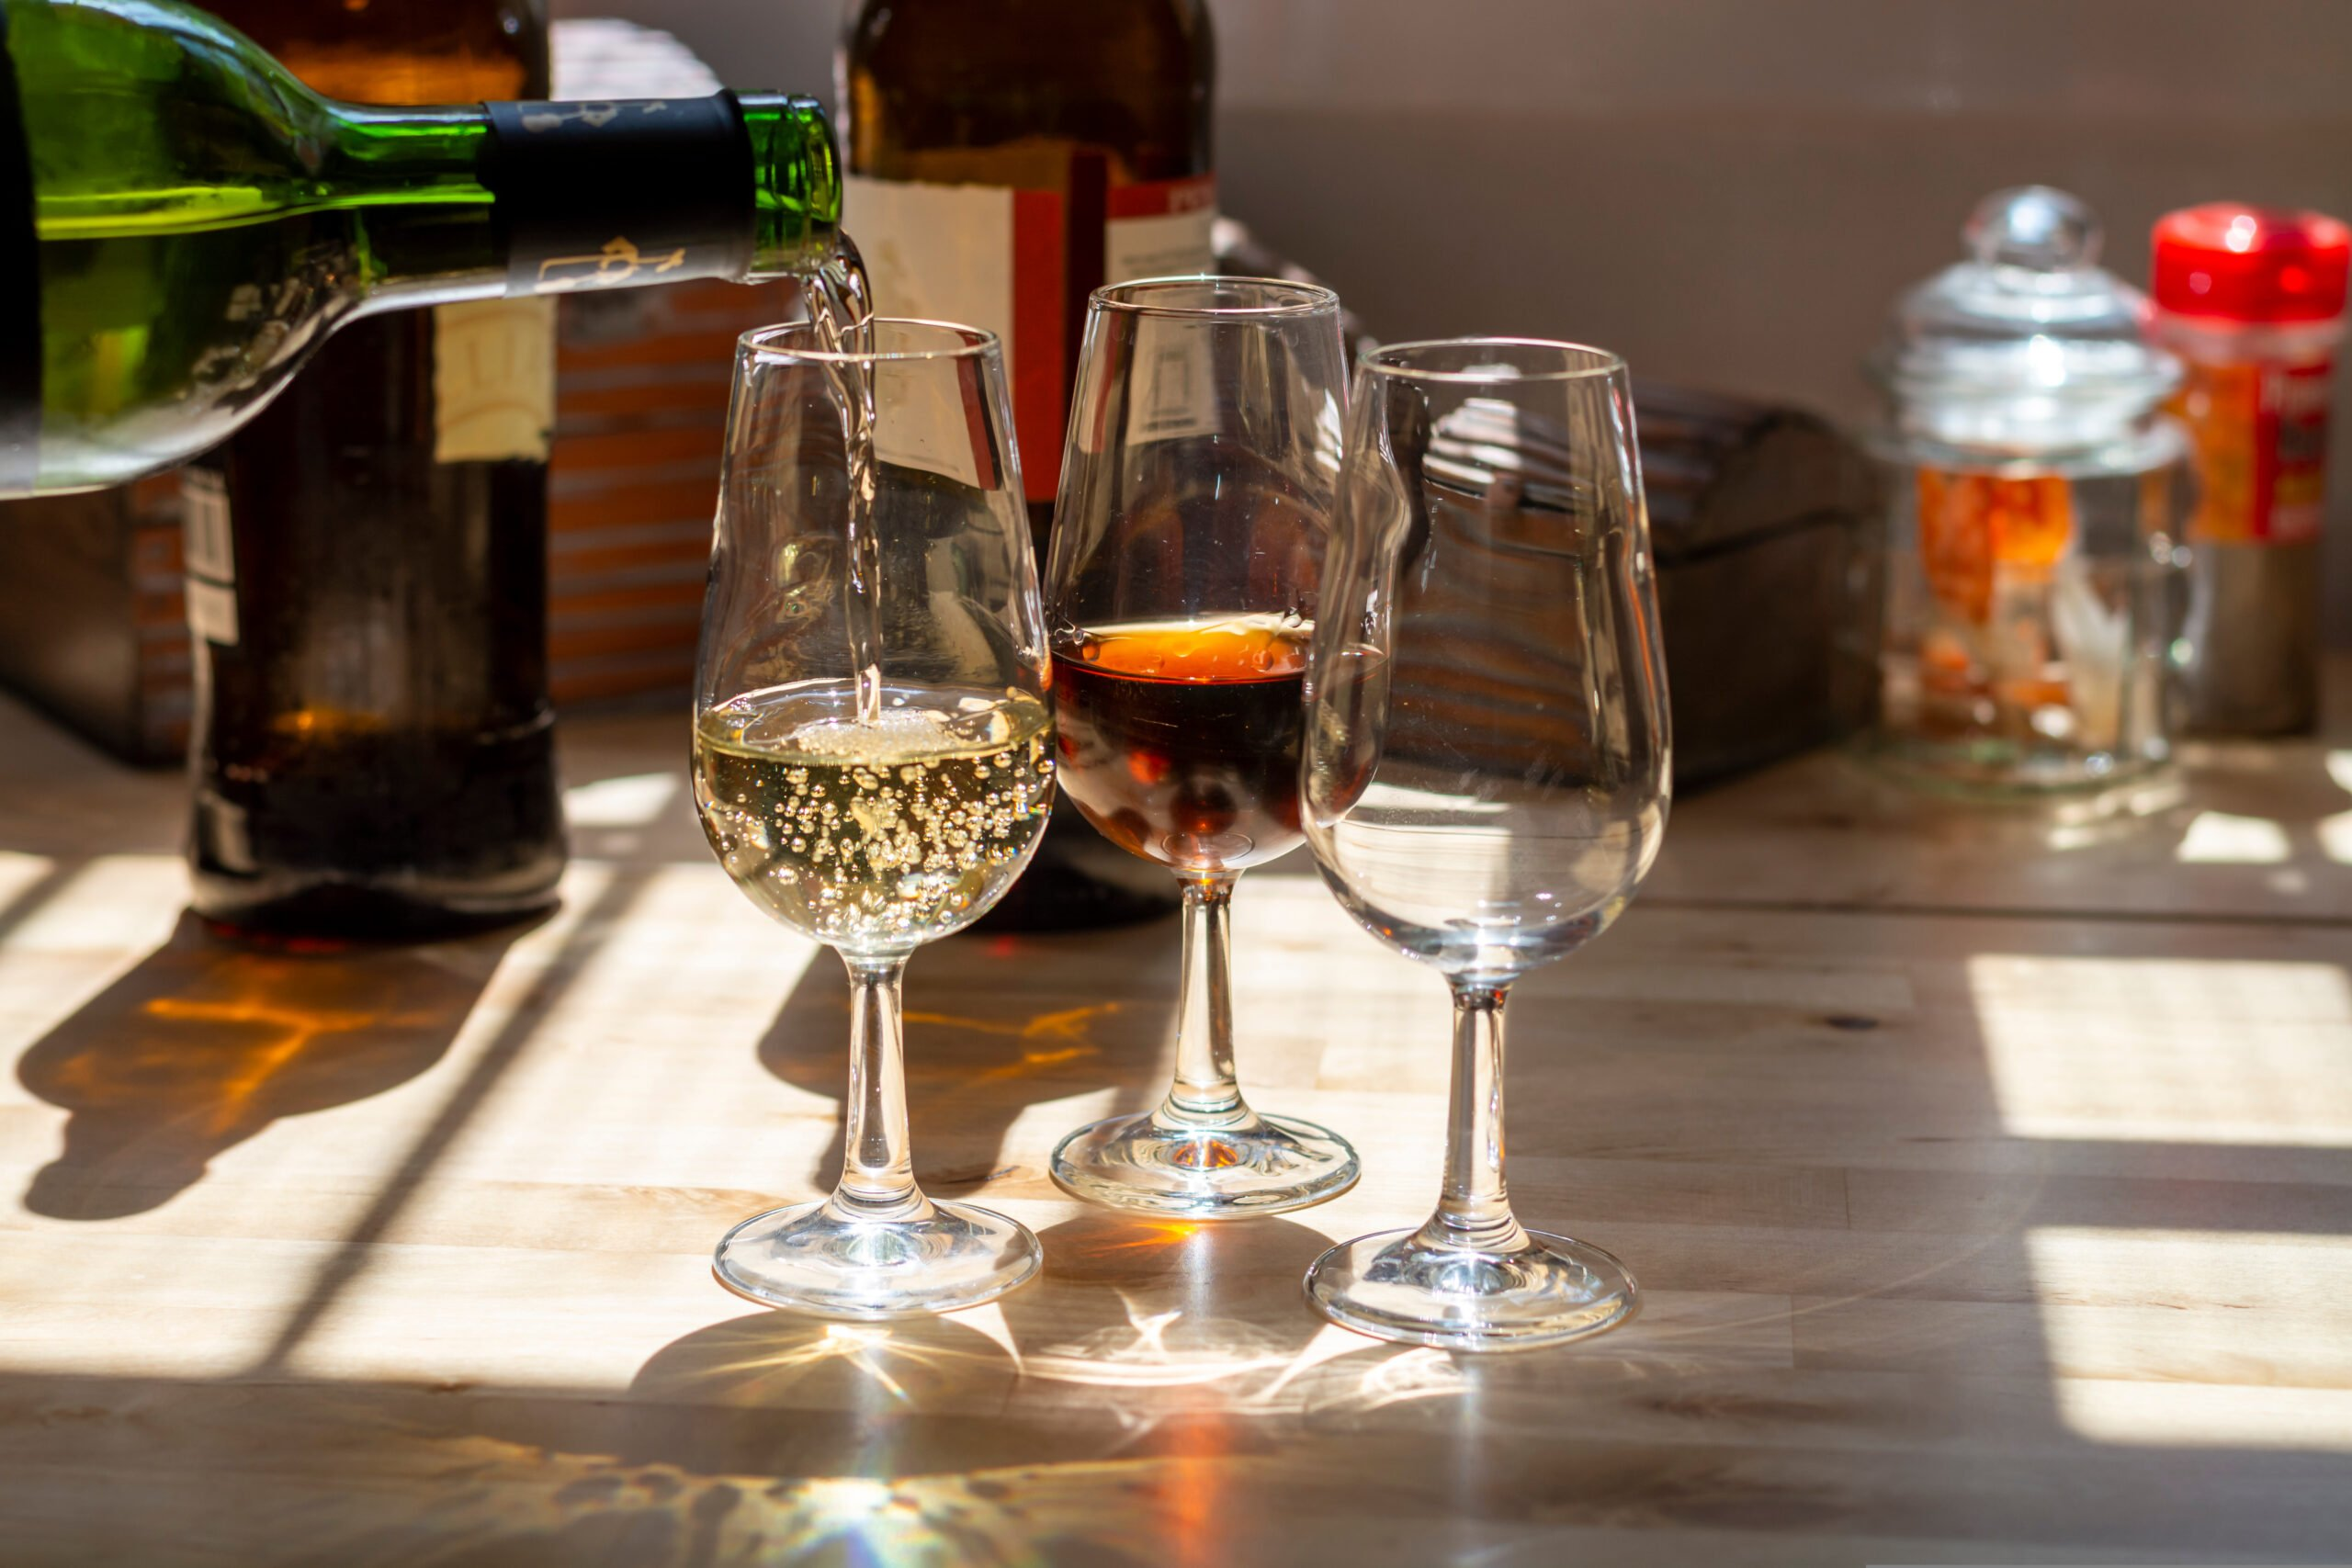 Taste The Delicious Sherry Of Jerez On The Cadiz & Jerez Sherry Tasting Tour From Seville